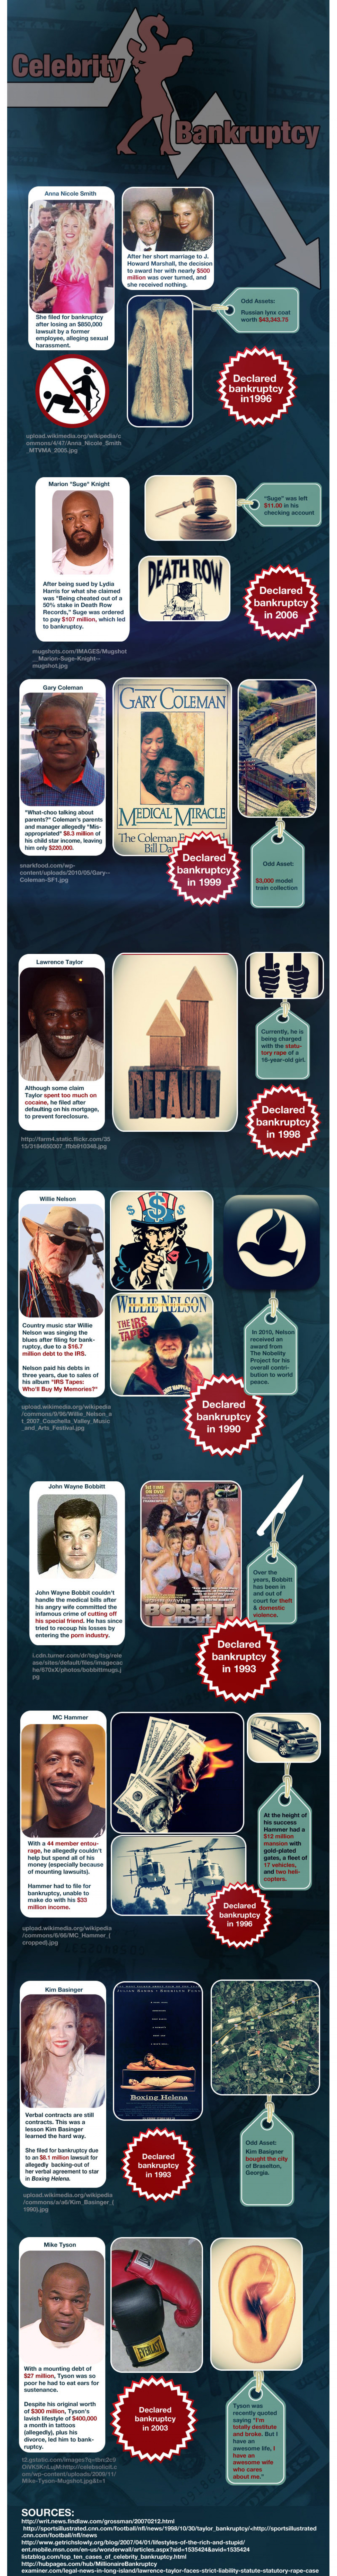 Most Bizzare Celebrity Bankruptcies Infographic